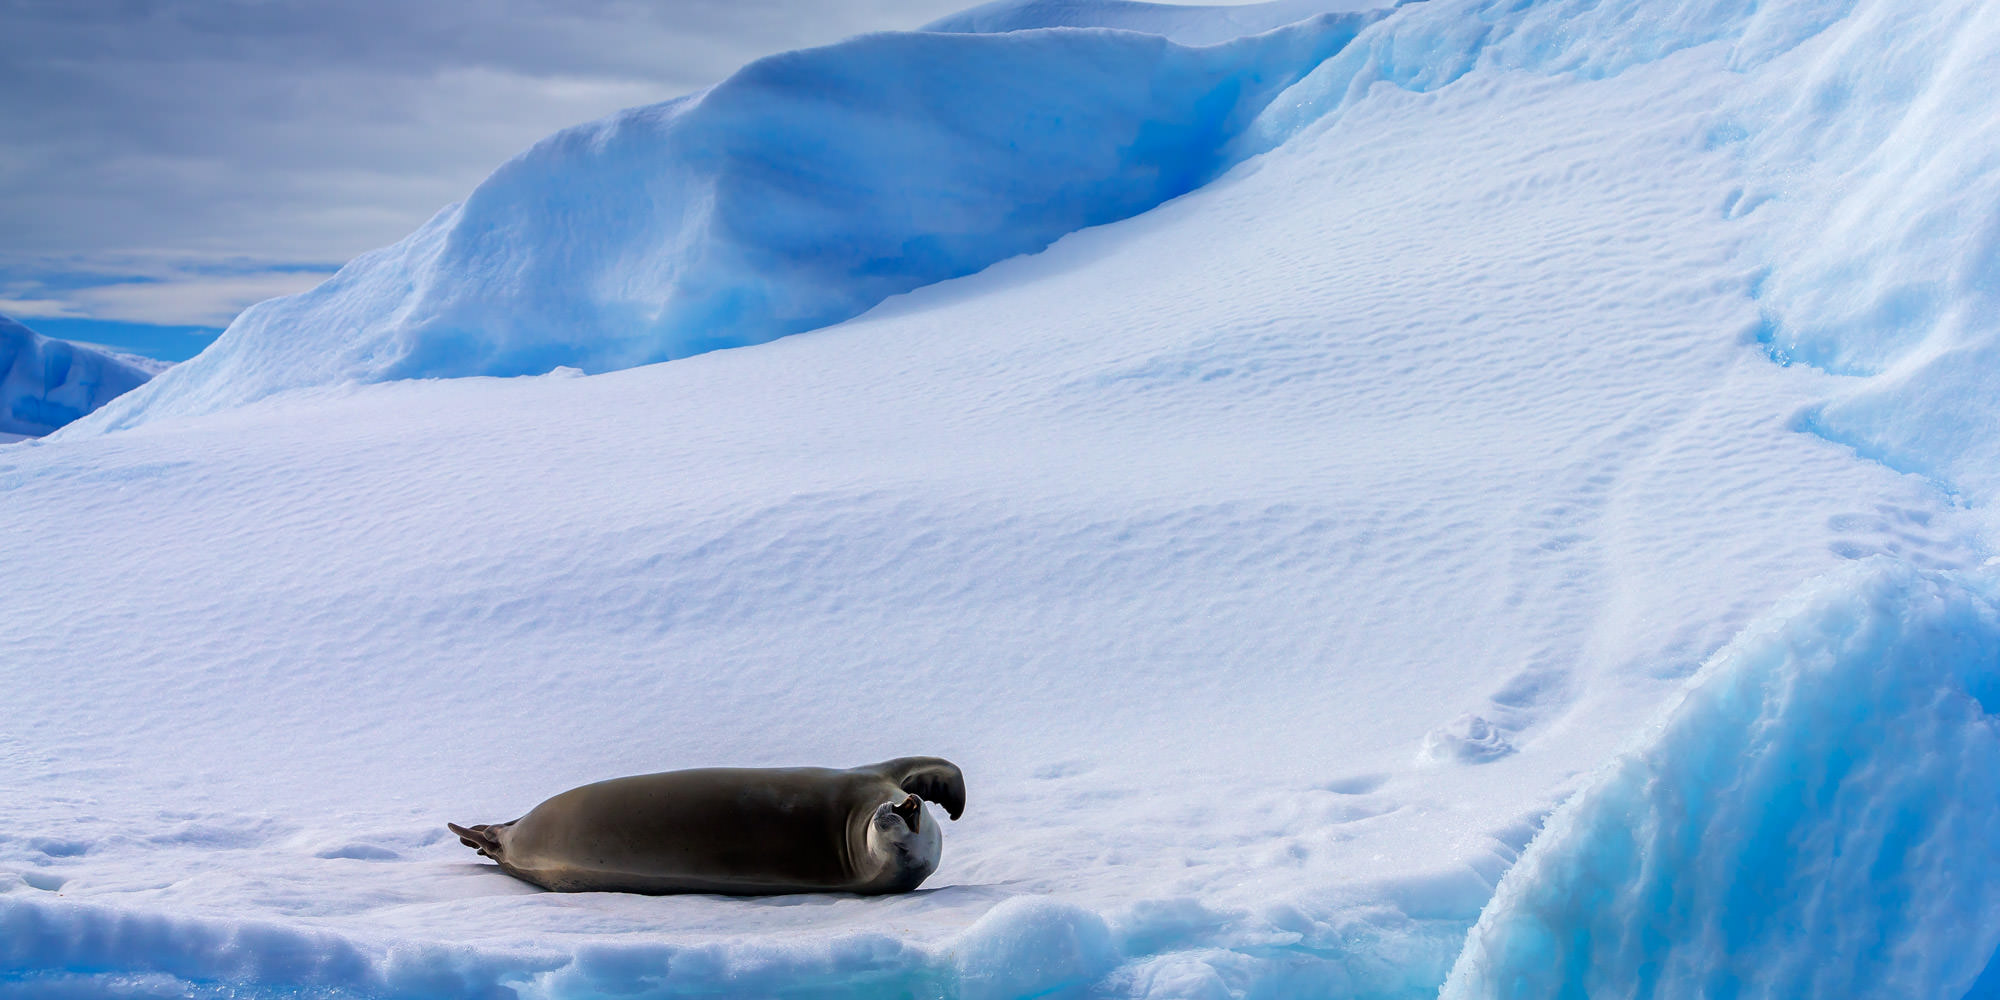 Seal, Crabeater Seal, Antarctica, limited edition, photograph, fine art, wildlife, photo